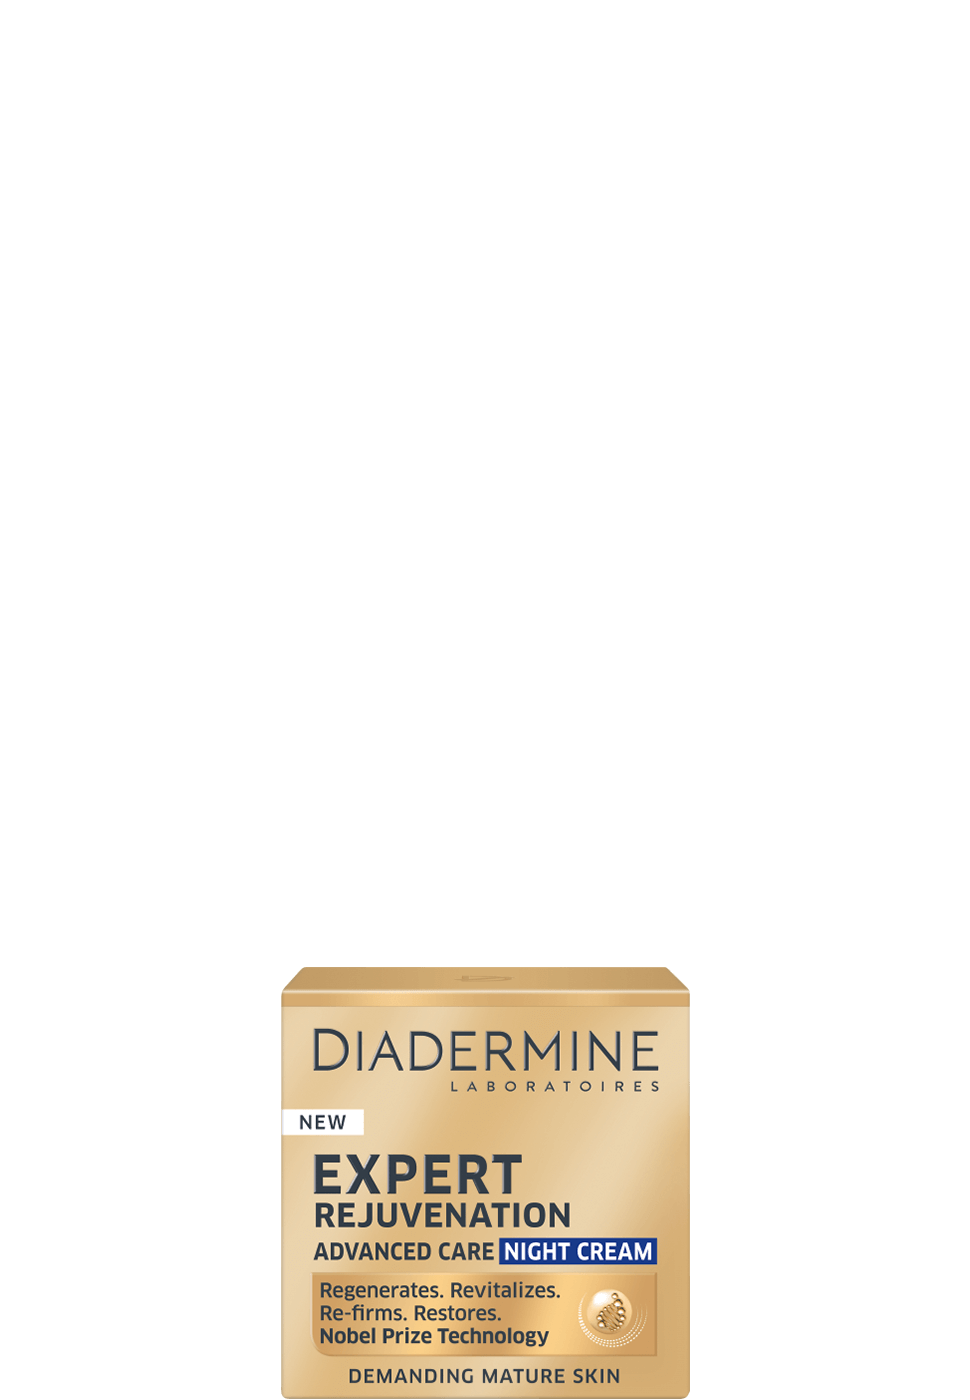 diadermine_com_expert_rejuvenation_advanced_care_night_cream_970x1400